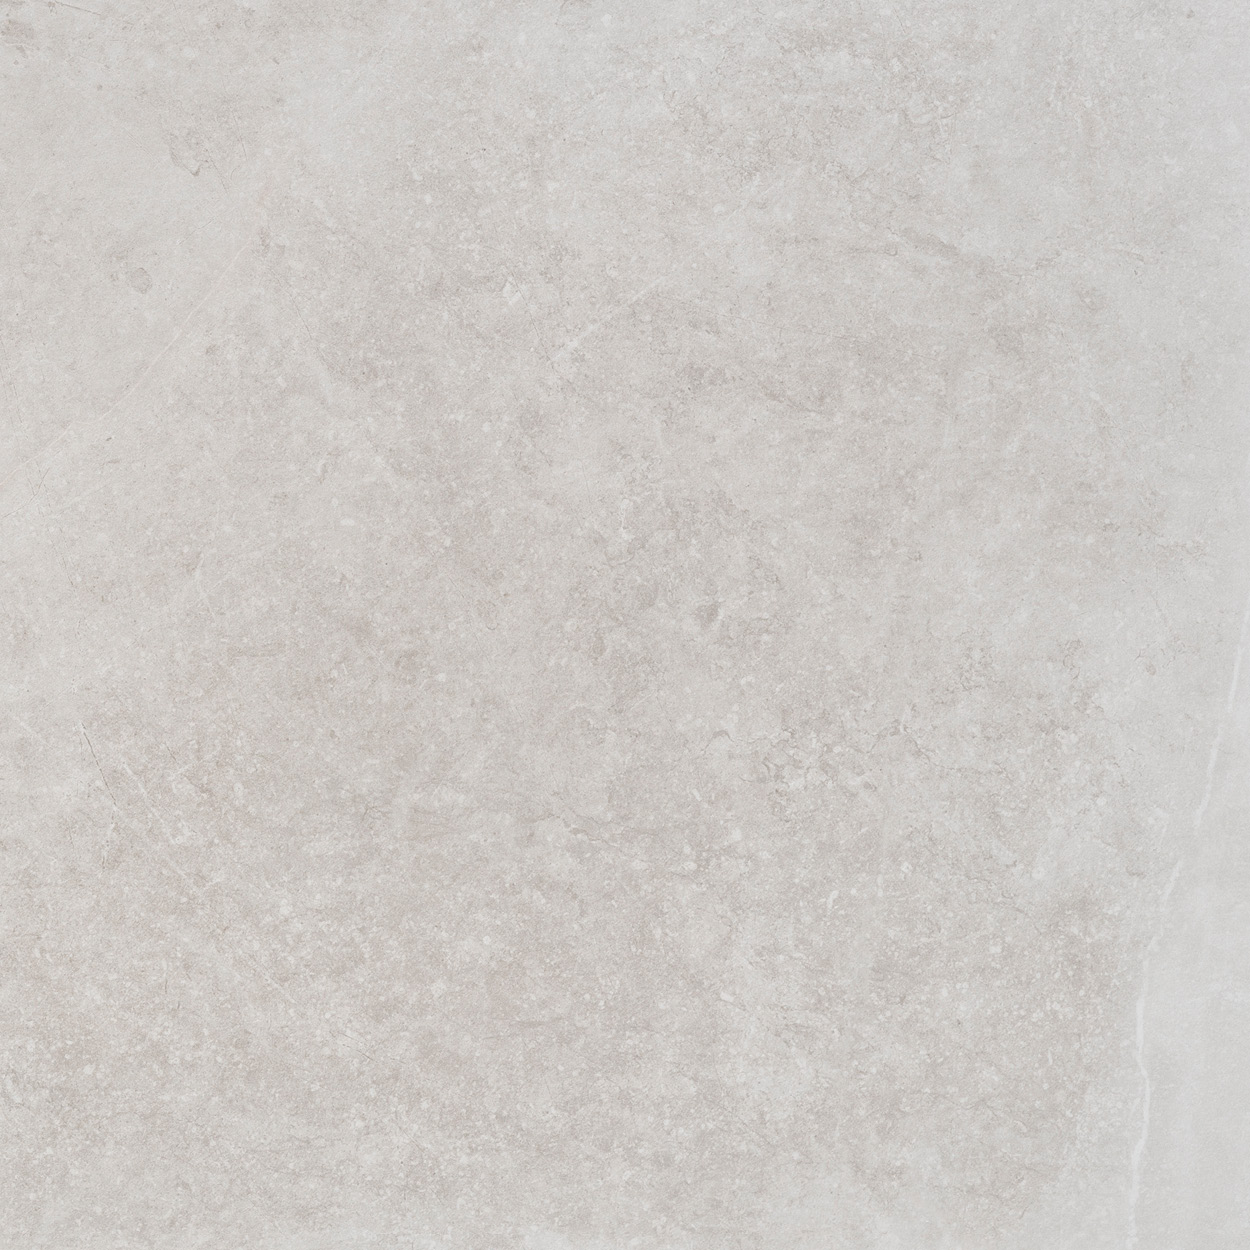 32 X 32 Evo Stone Ivory Honed finished Rectified Porcelain Tile (SPECIAL ORDER ONLY)